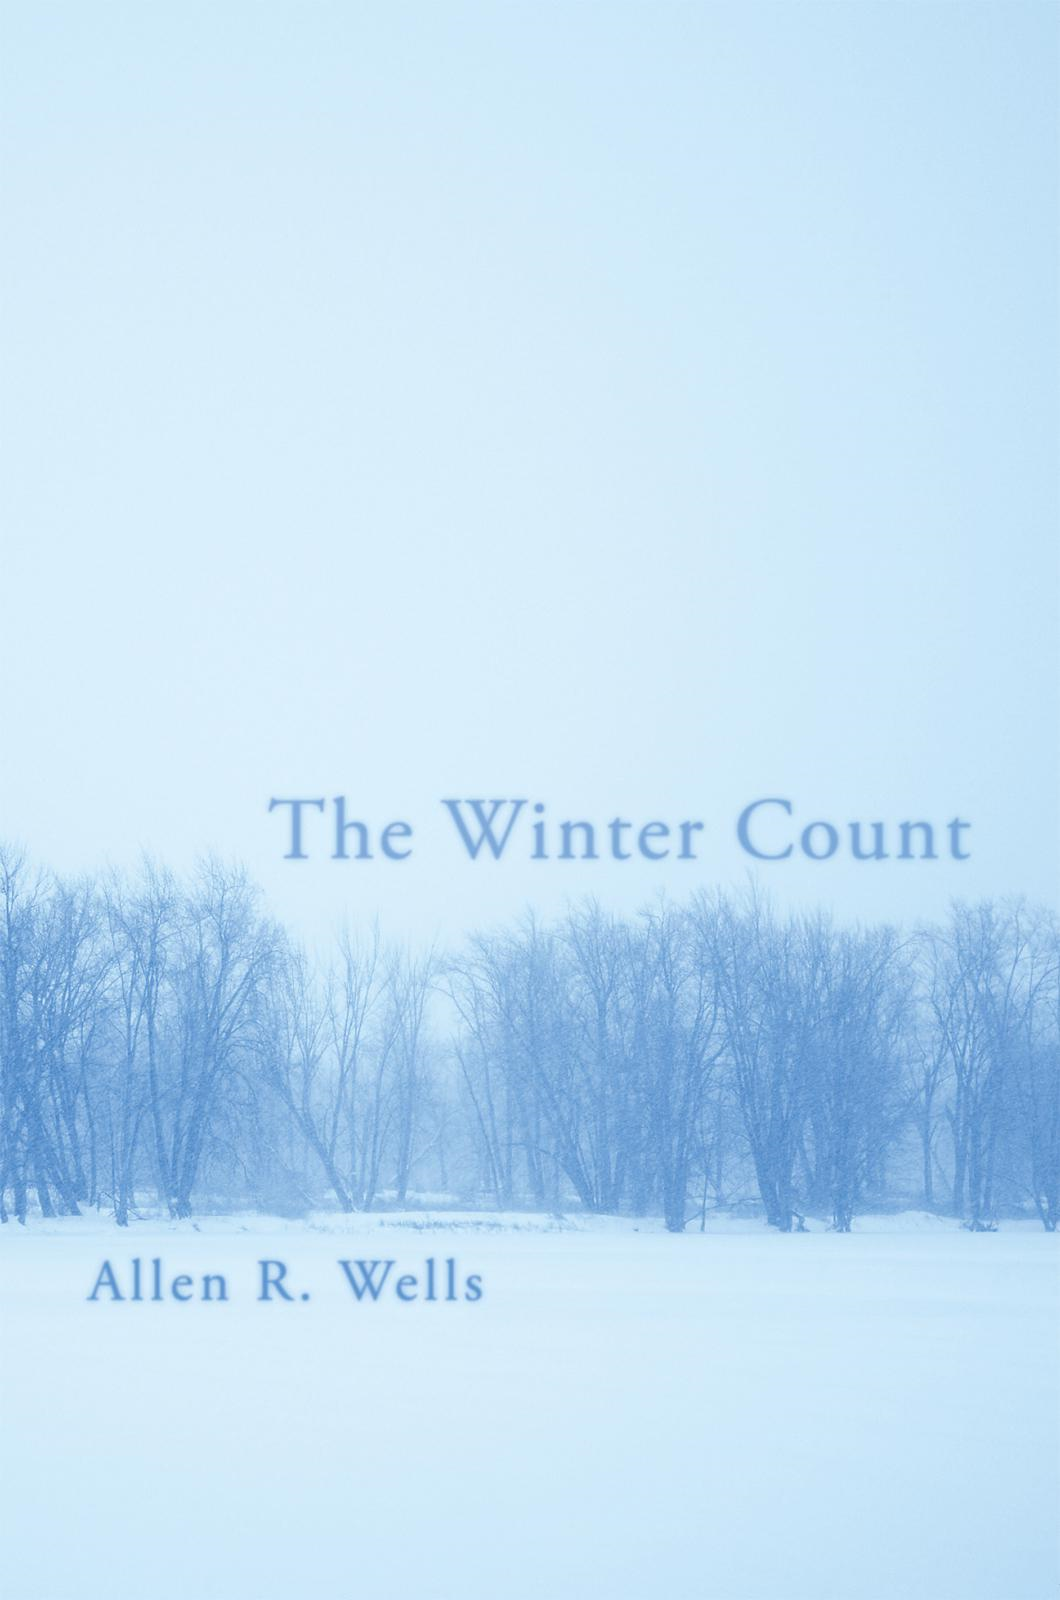 The Winter Count